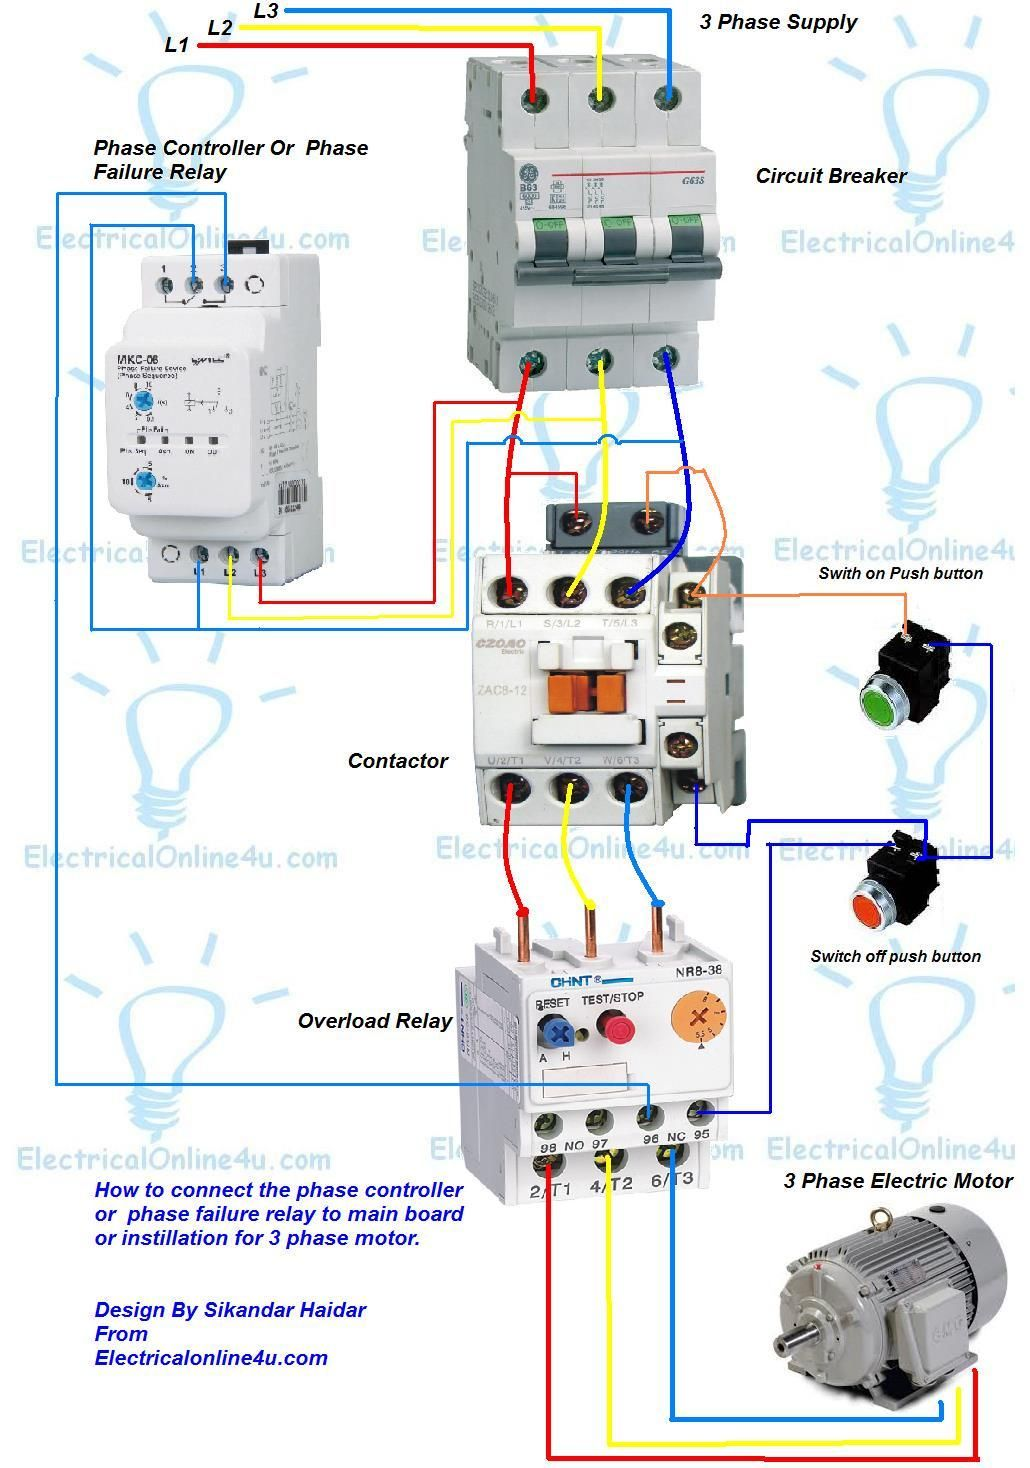 relay schematic wiring diagram electrical wiring diagram relay circuit wiring diagram wiring diagram technic [ 1030 x 1468 Pixel ]